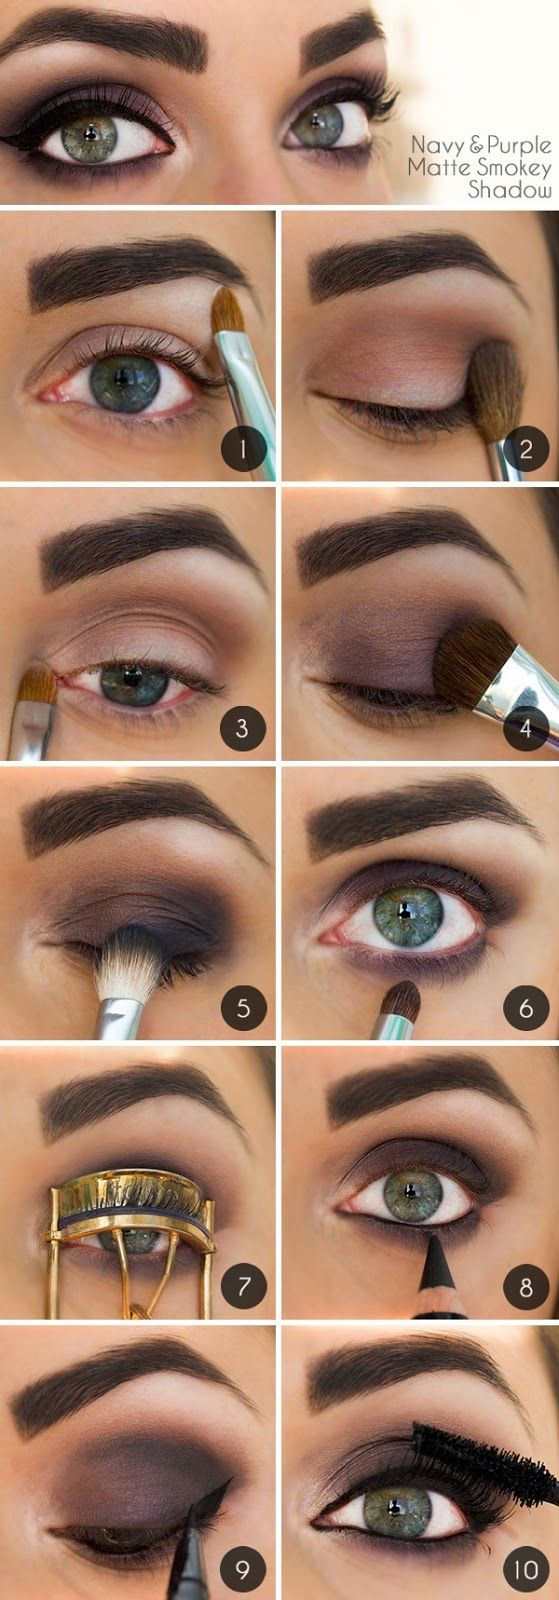 Eye Makeup Must-Try: Navy How to apply makeup correctly, info here: www.crazymakeupideas.tk